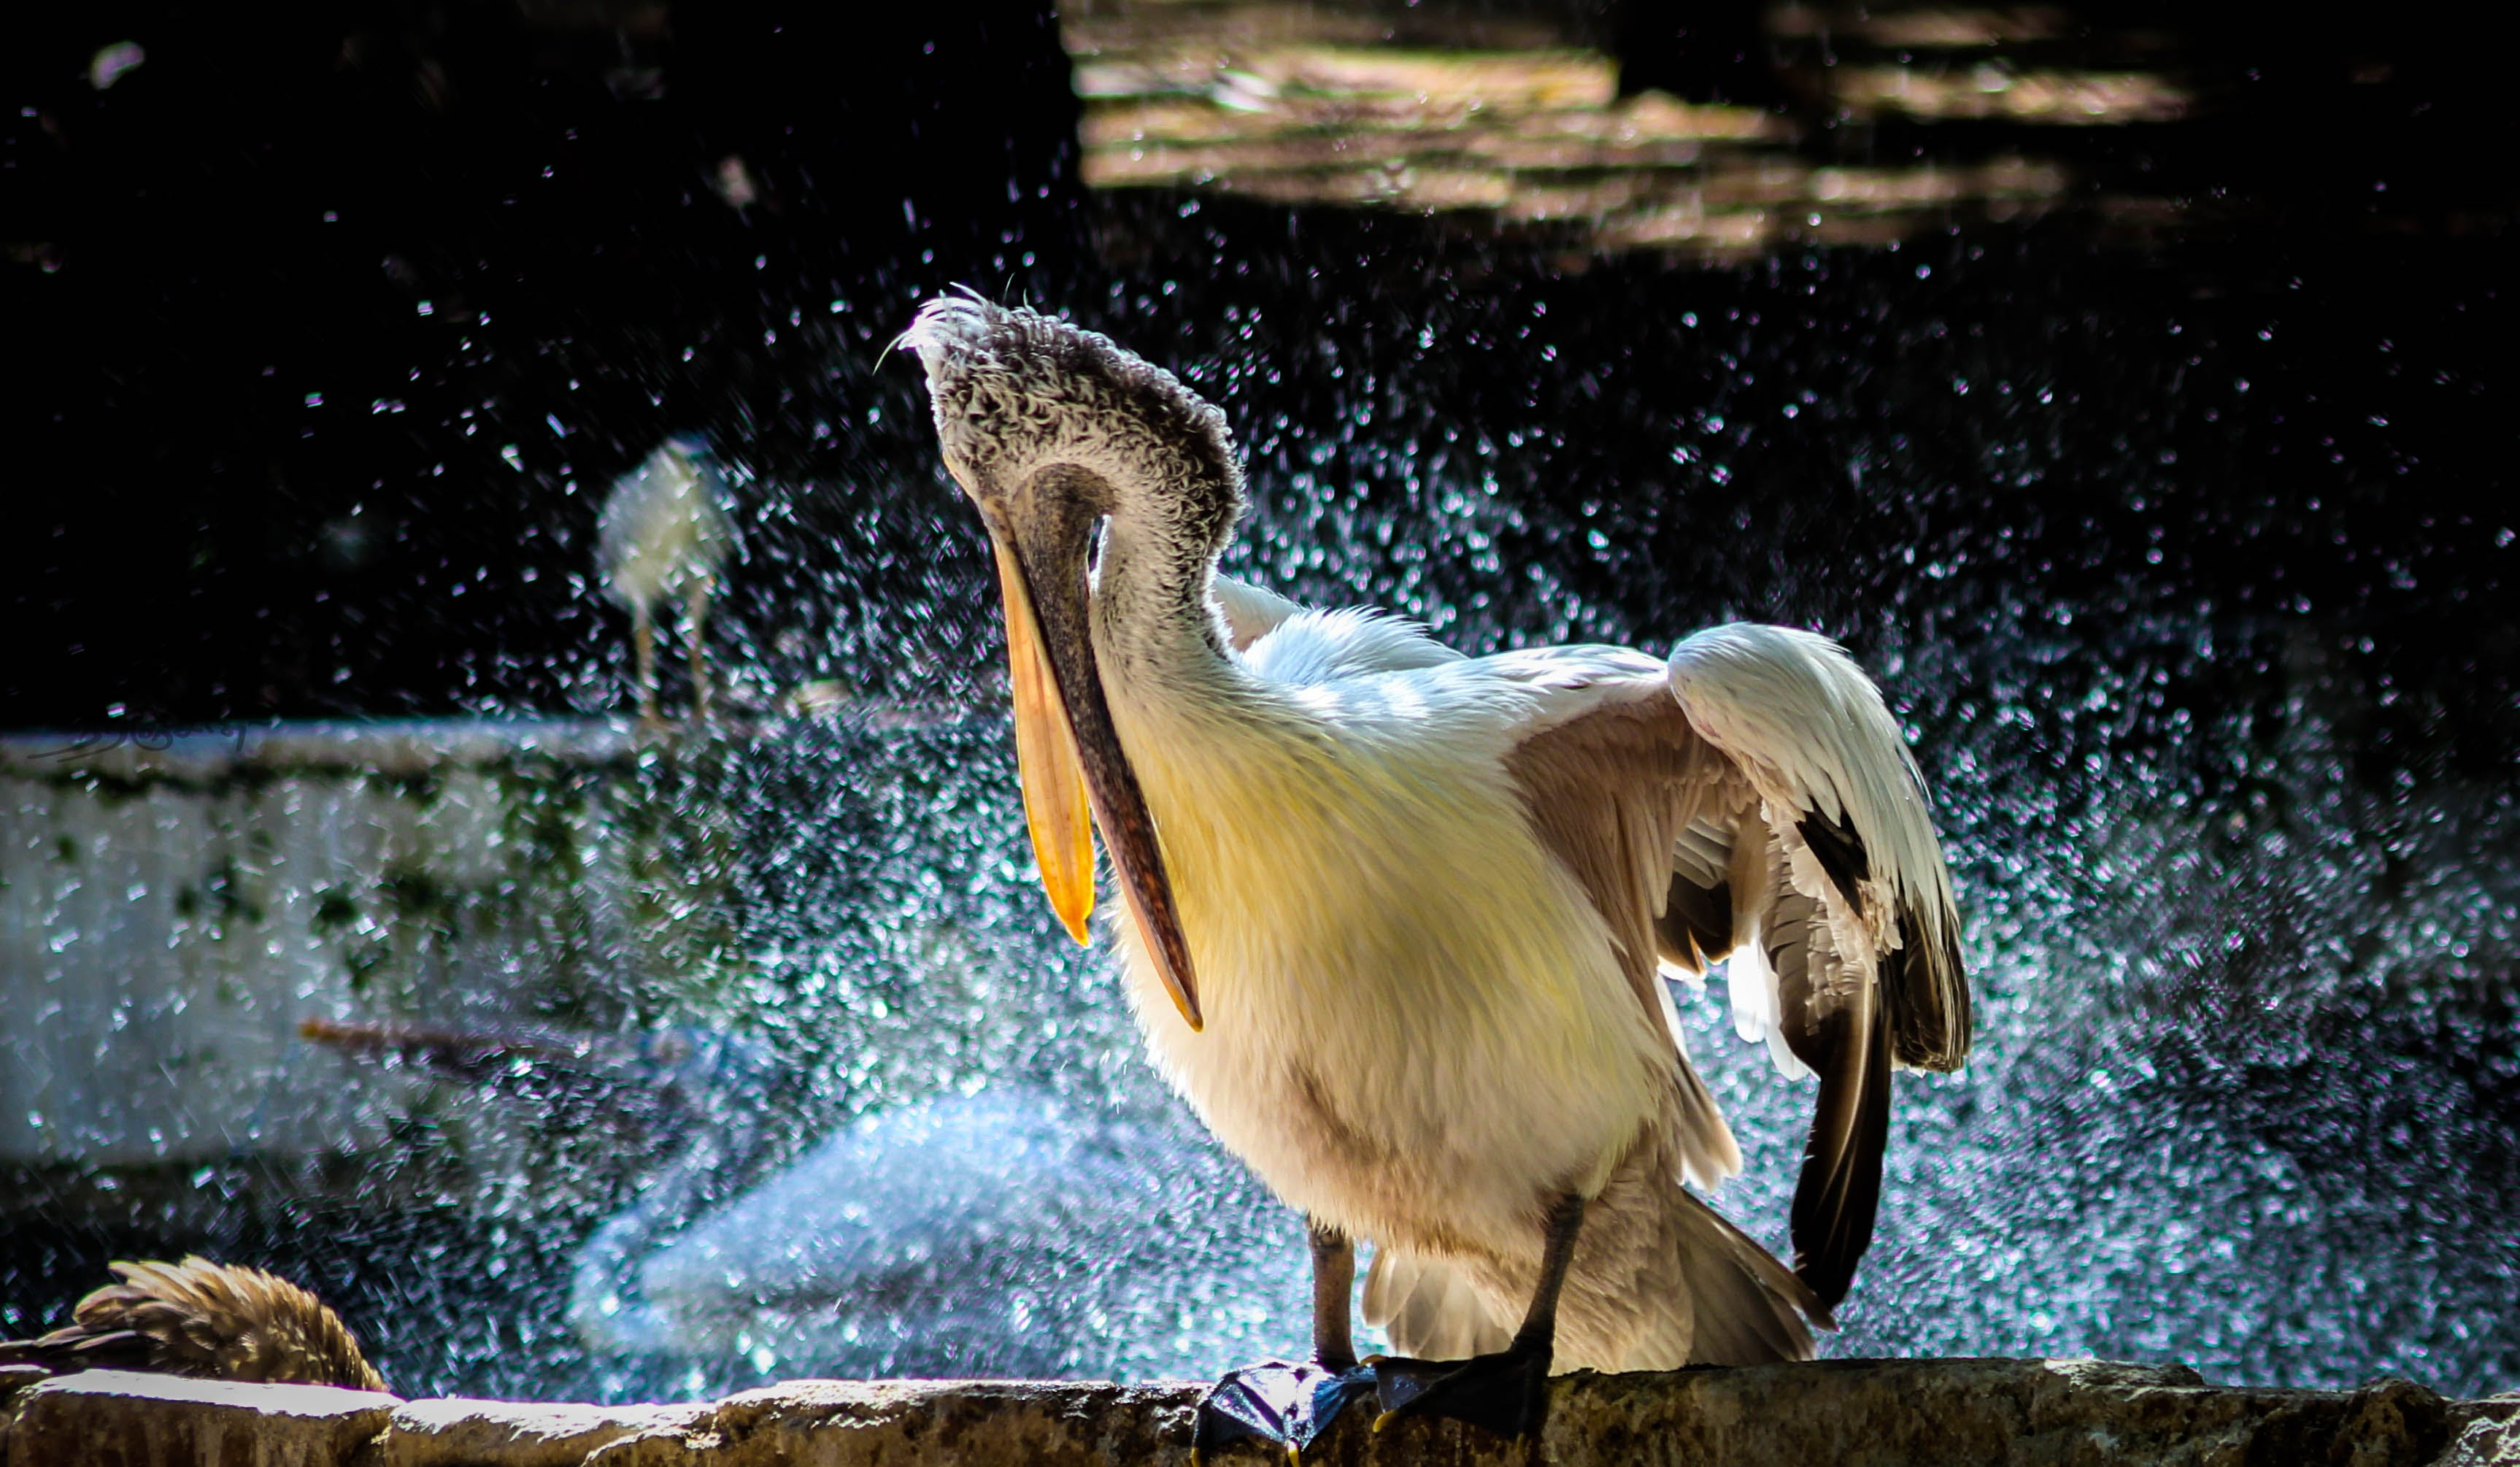 White Pelican In Shallow Photo